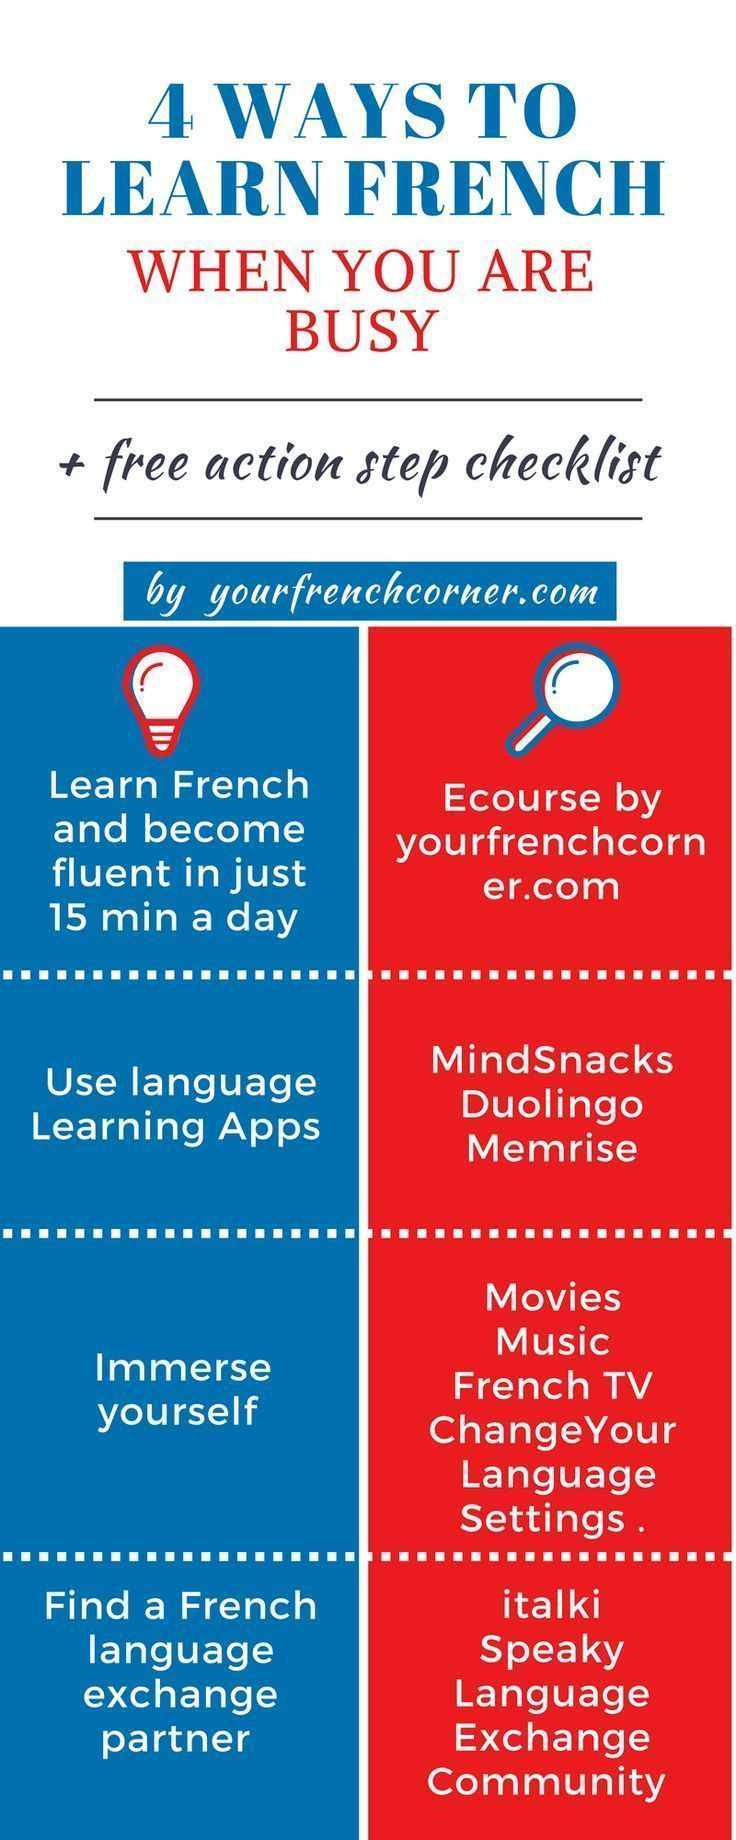 Learn French online | Free French lessons - Loecsen